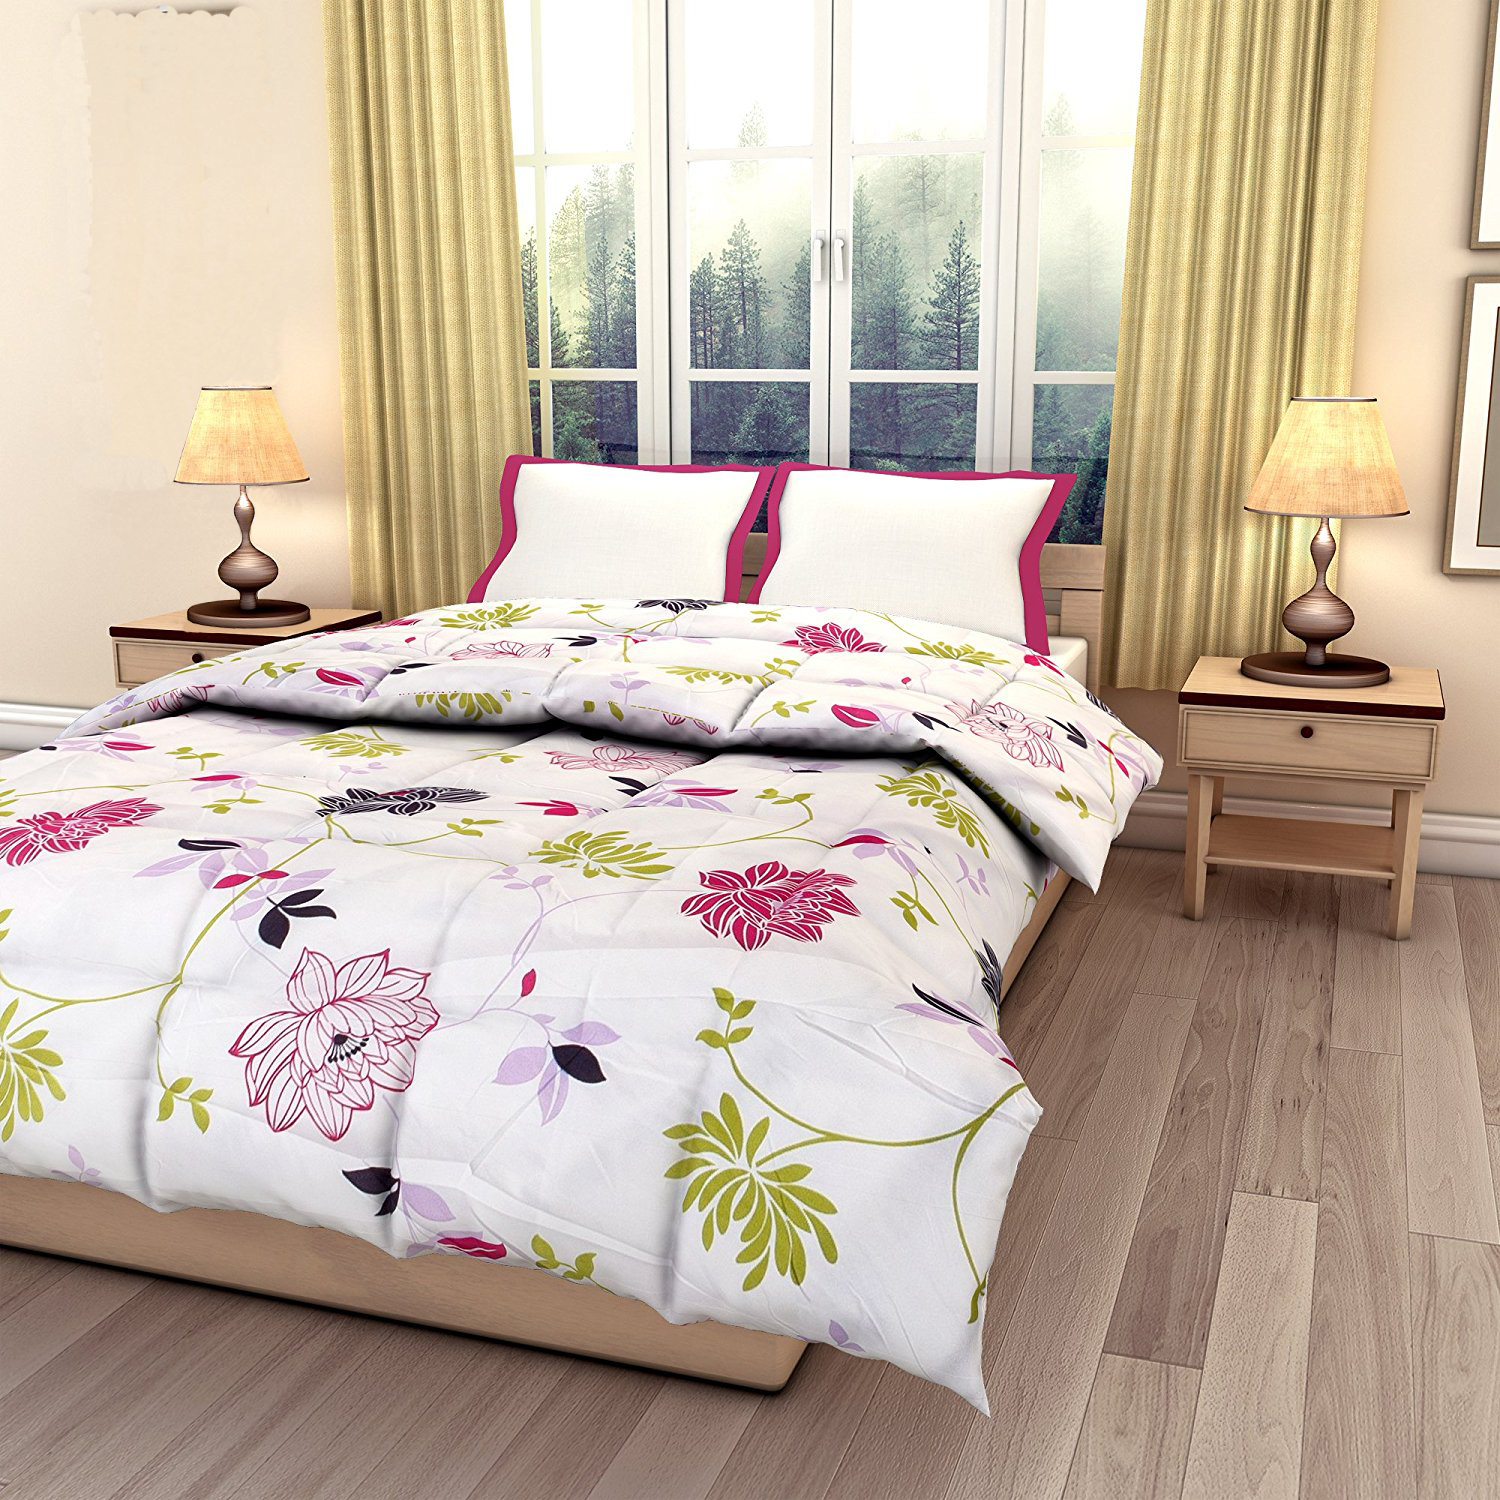 Kuber Industries™ Flower Print Reversible Poly Cotton Single Bed AC Blanket / Dohar (Pack of 2 Pcs) (Multi) (Code-DOH15)